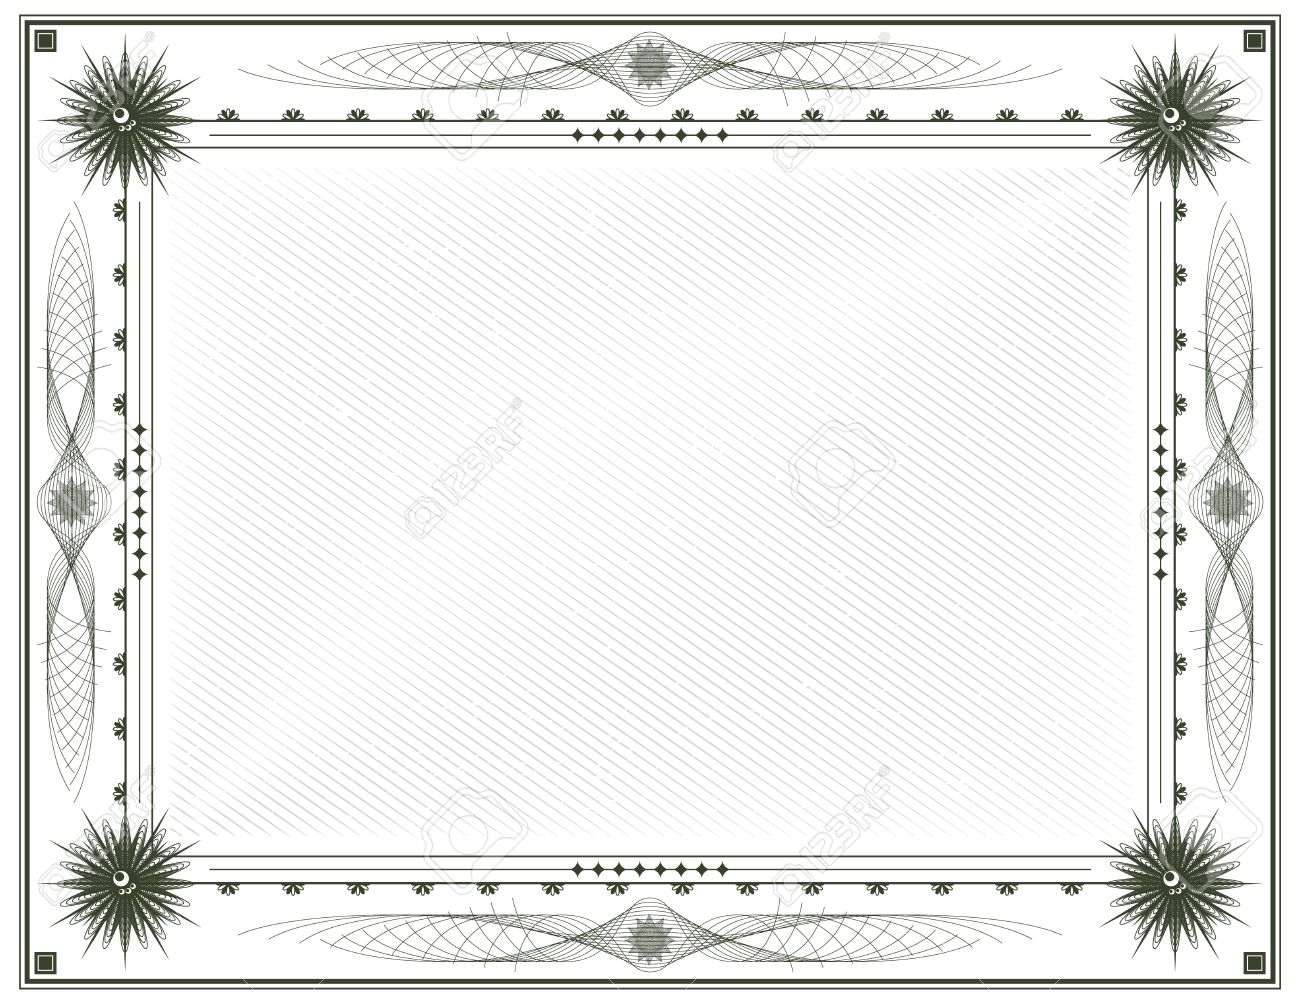 Blank diploma or certificate vector template letter format royalty blank diploma or certificate vector template letter format stock vector 36806381 yelopaper Choice Image